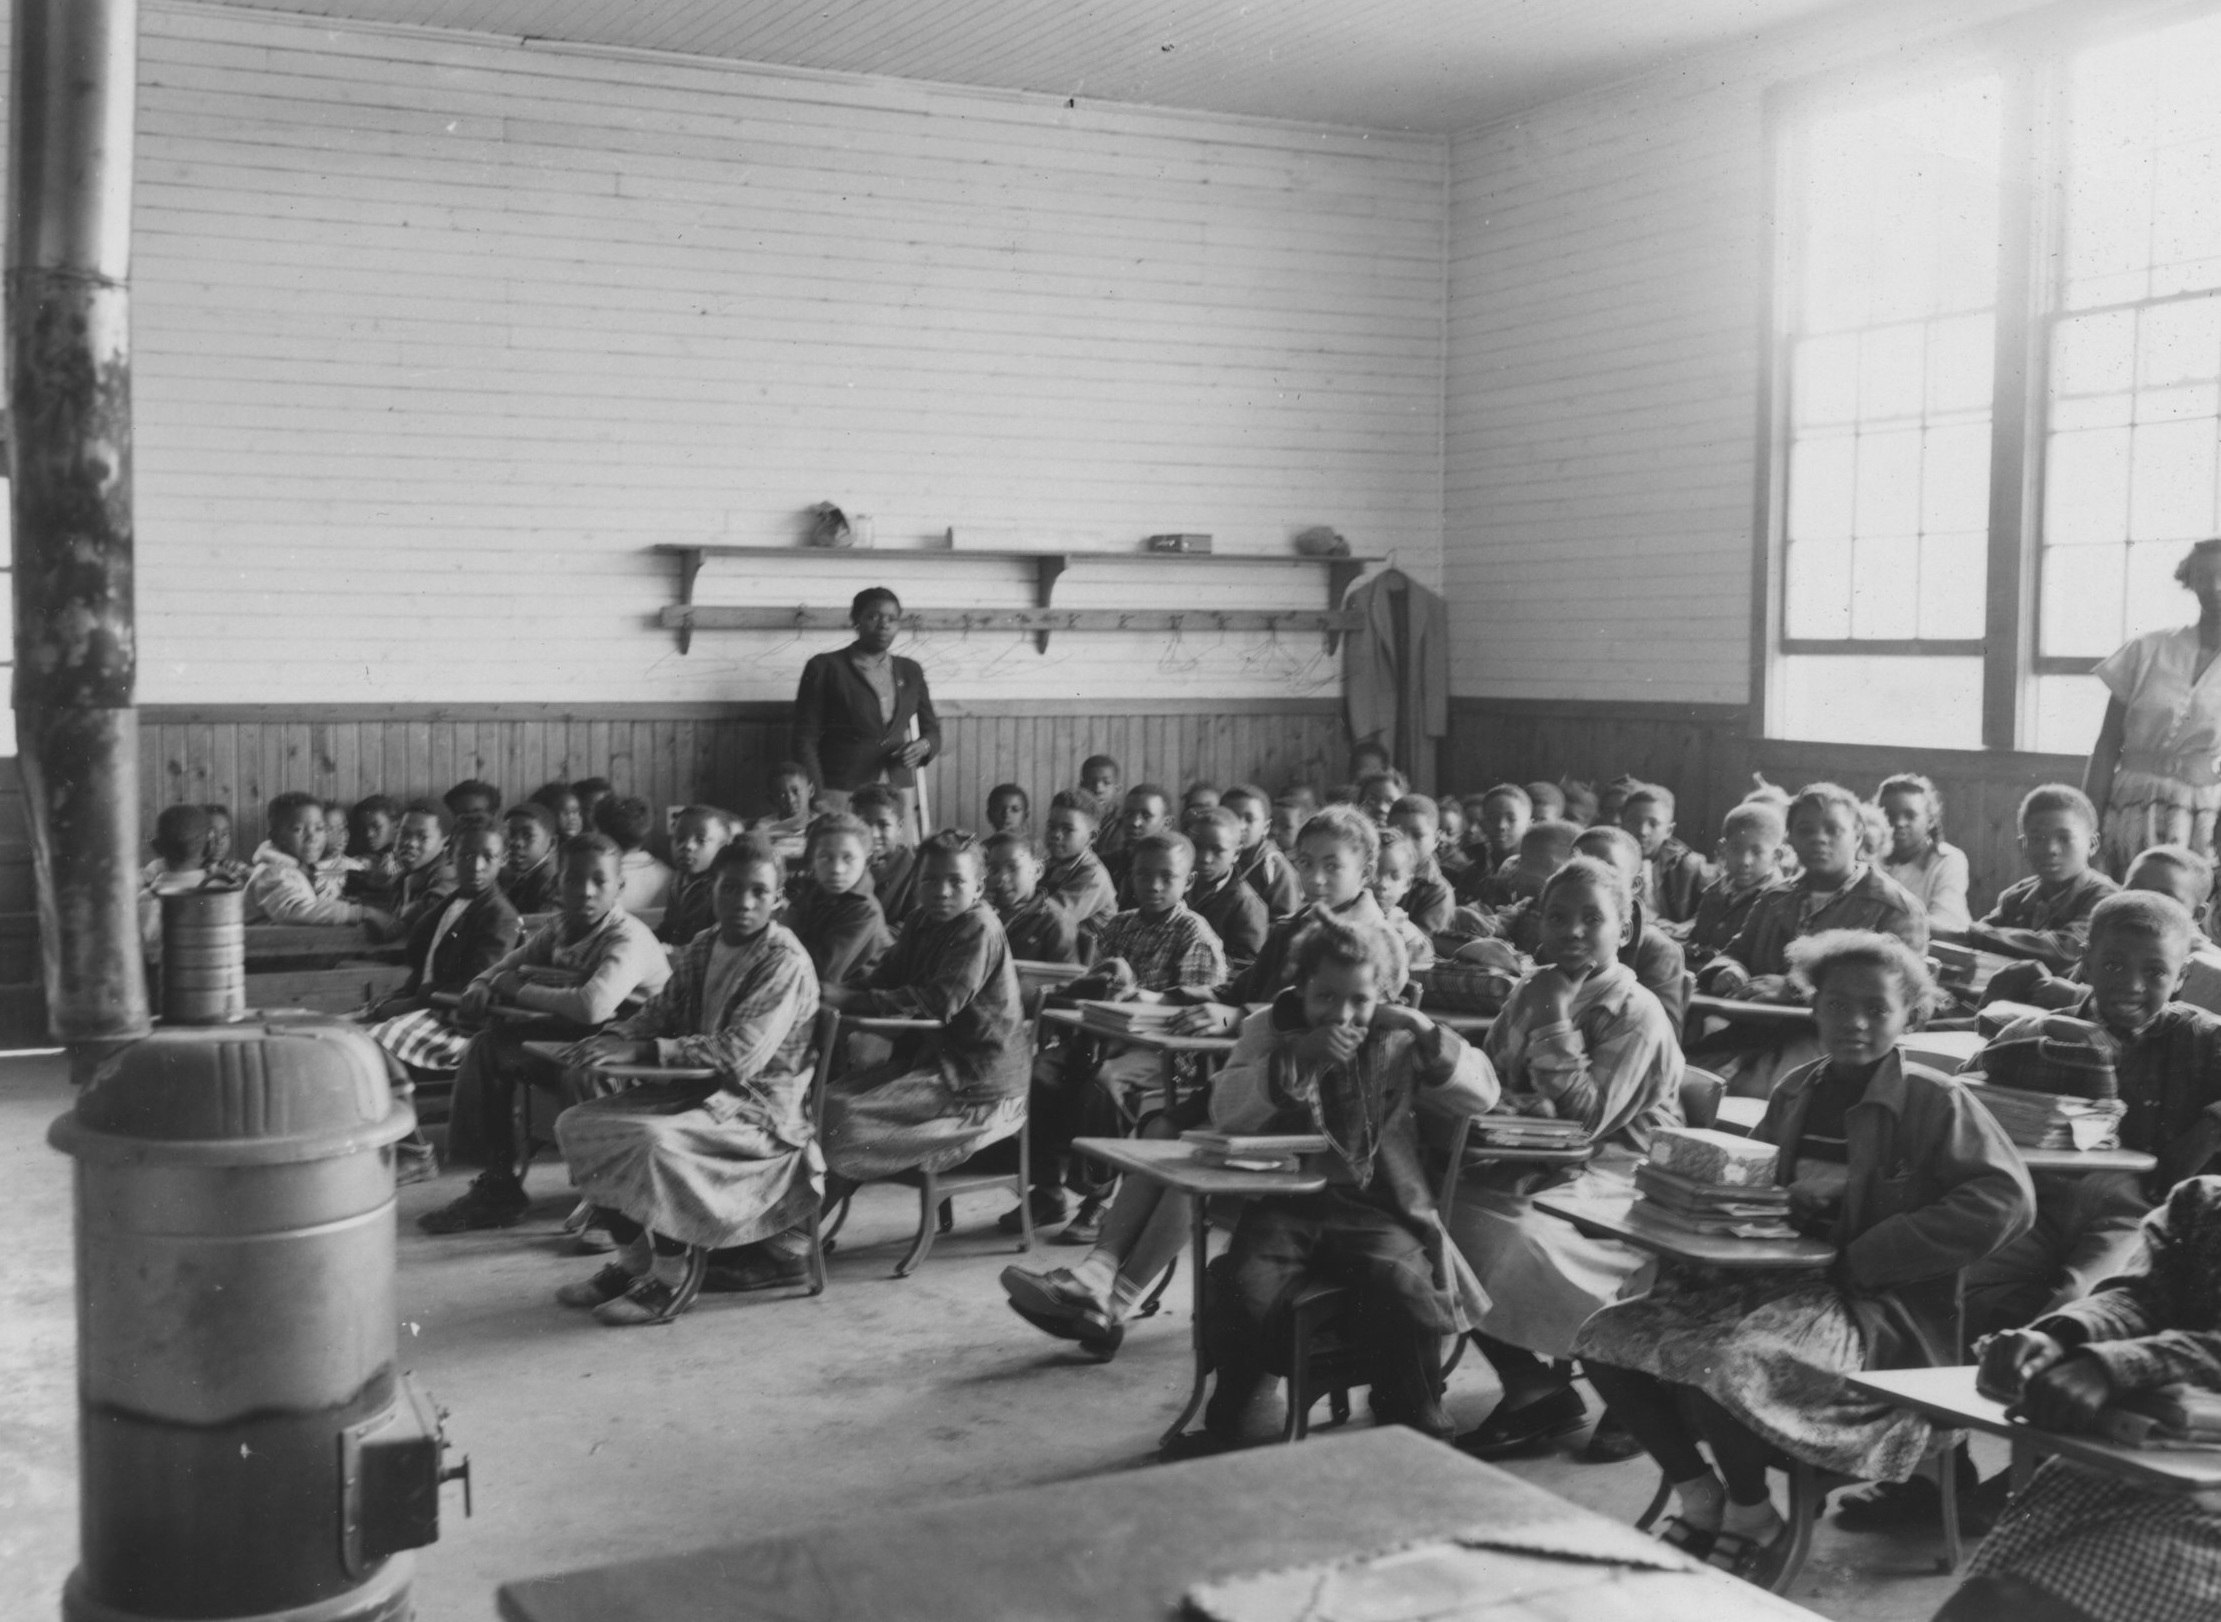 The only heat for students in the Sherman Creek Elementary School in Tallahatchie County in 1955 was the wood heater in the middle of the room.   John E. Phay collection at the University of Mississippi Libraries Digital Collections